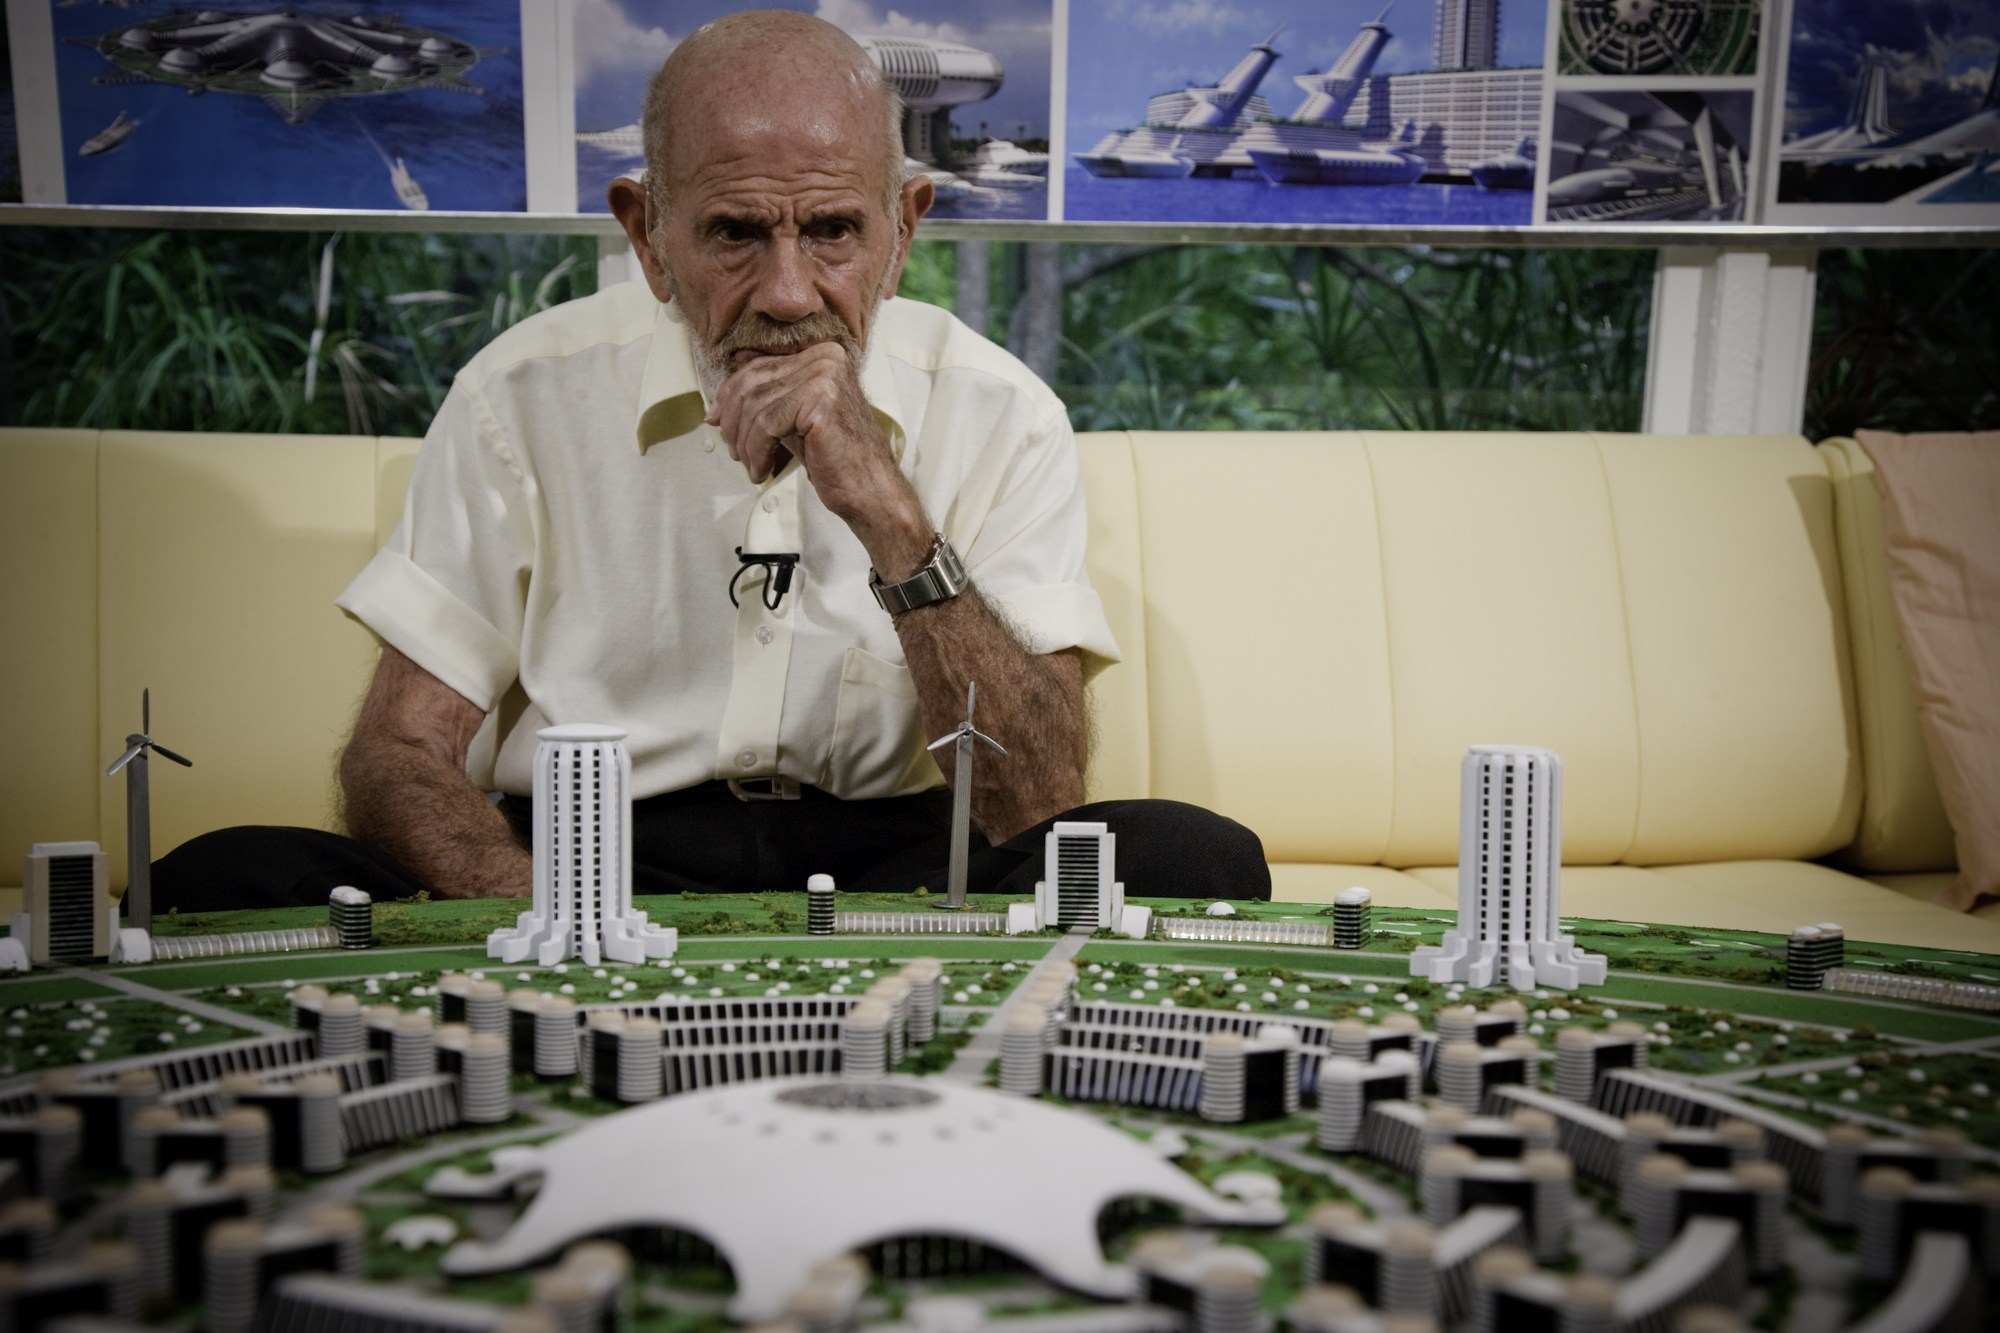 Jacque-Fresco-city-model.jpg